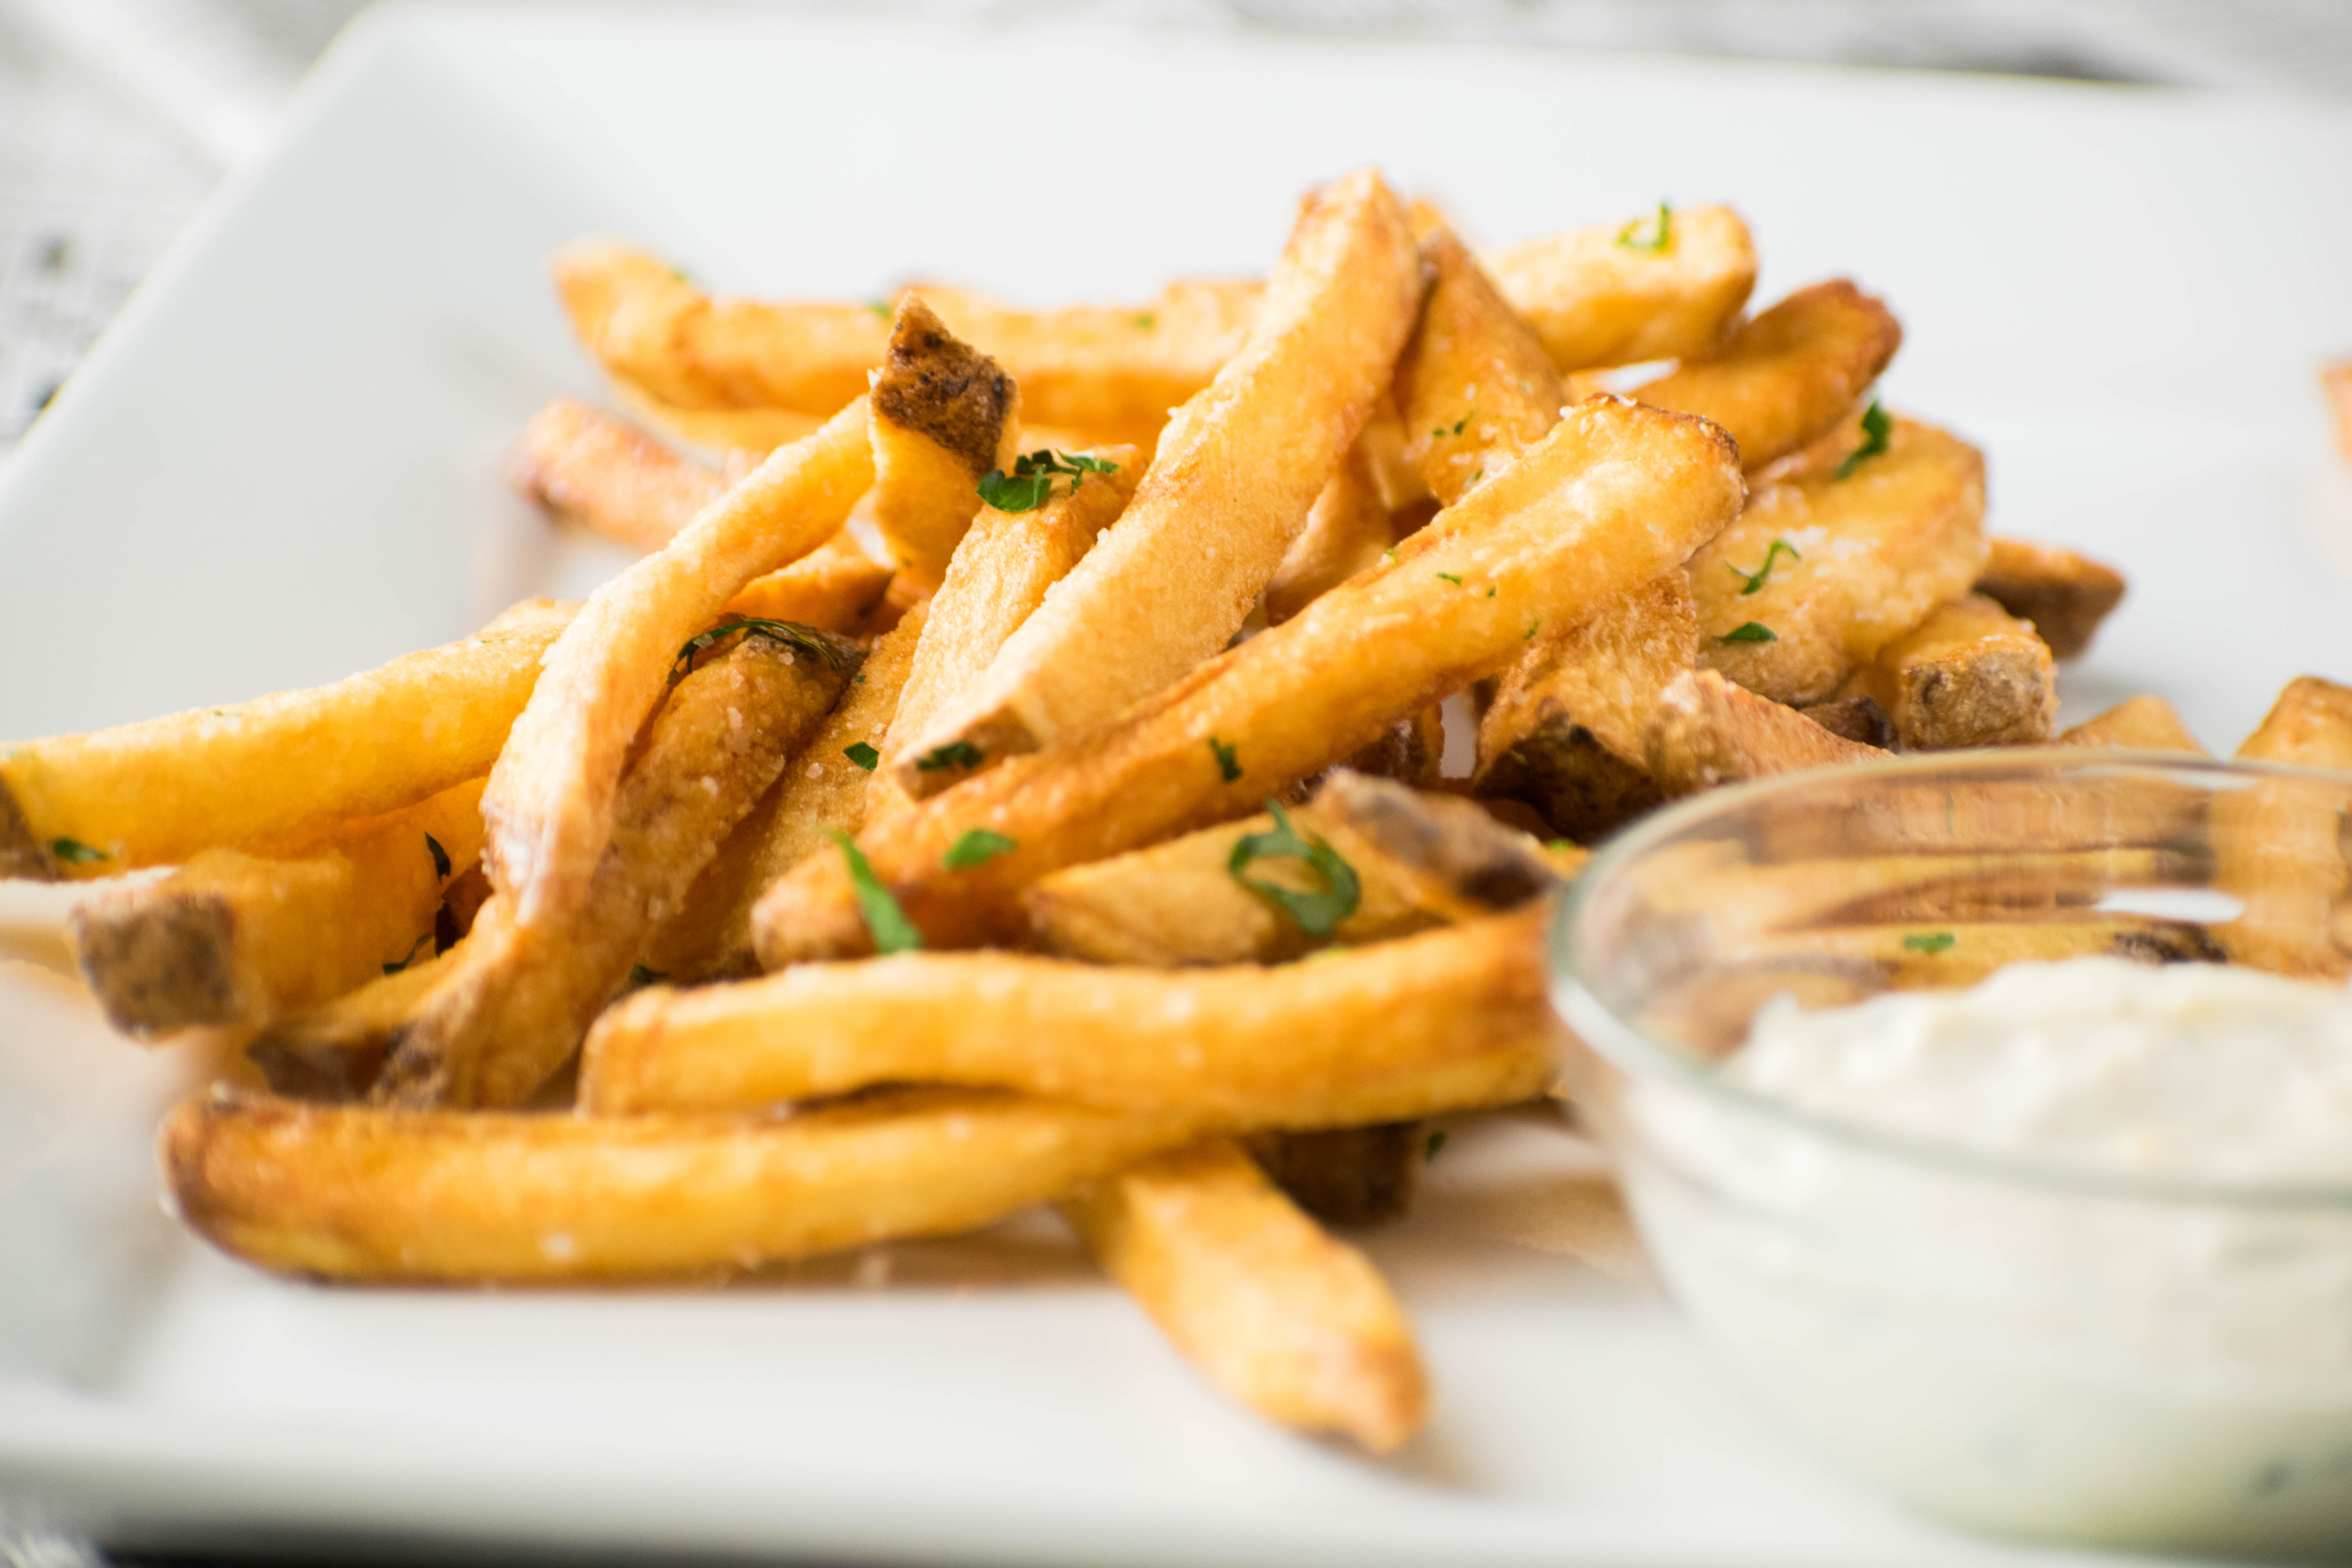 Homemade French fries as good as any restaurant